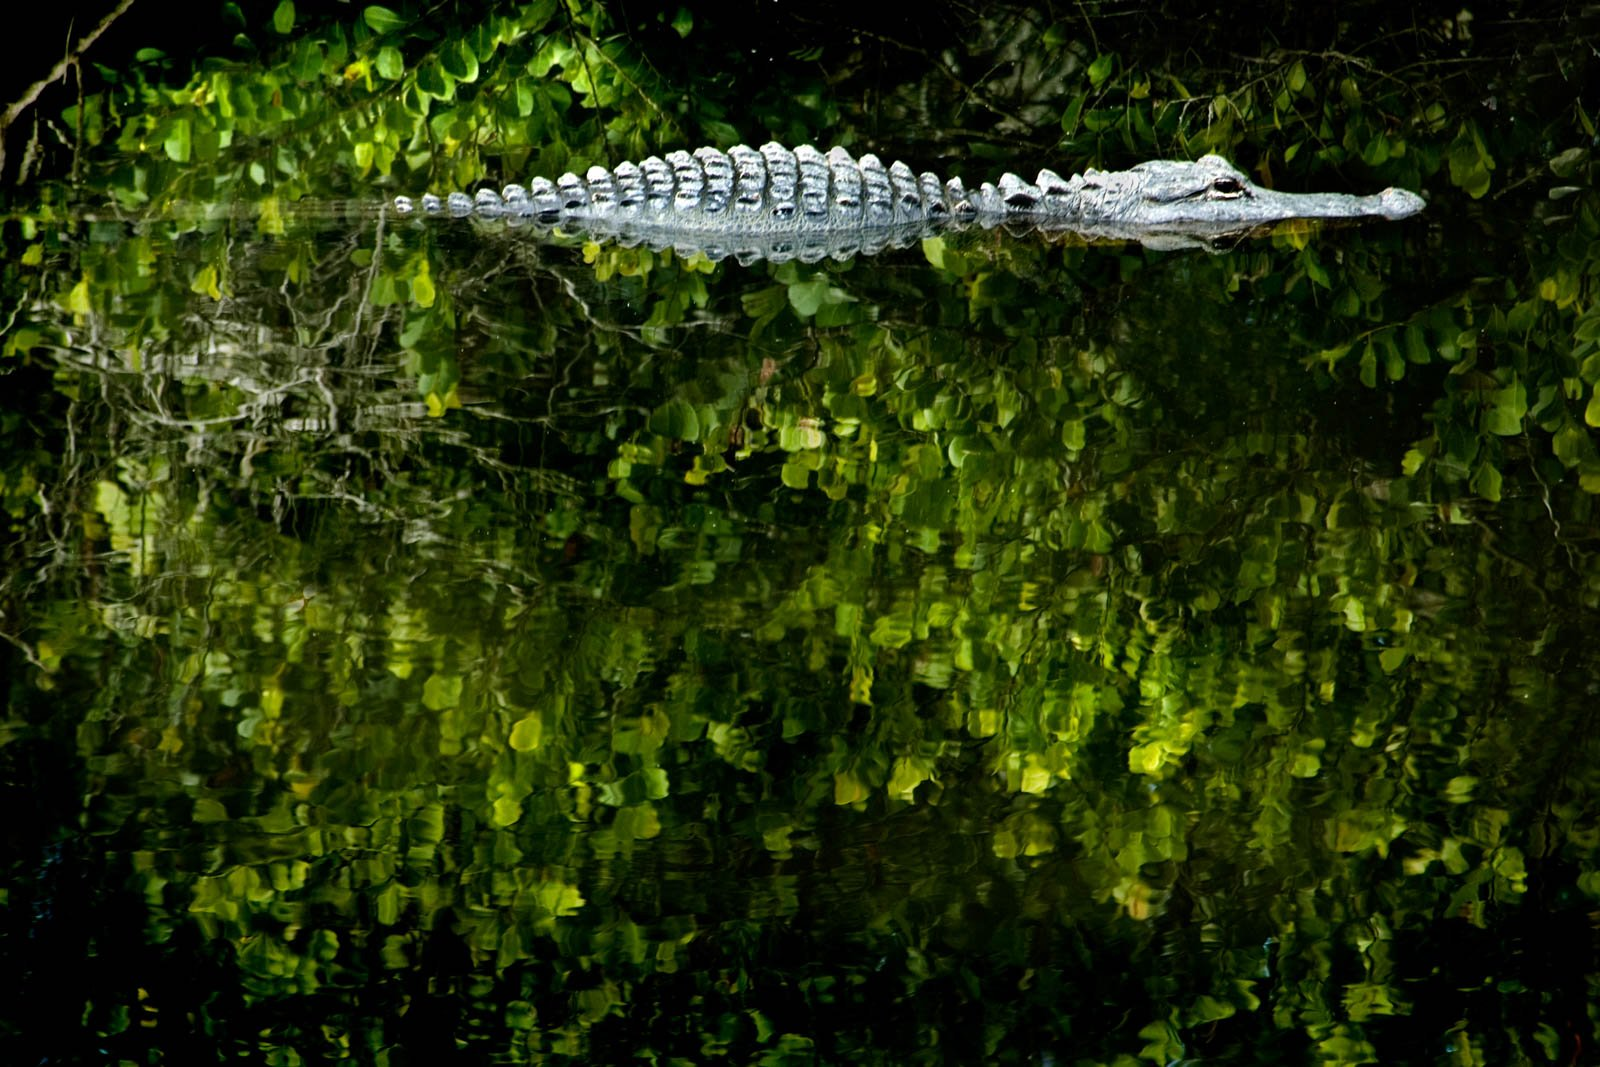 Alligator Lurking in the dark waters of Everglades Natonal Park. A one day trip to bahamas and many day trips from Miami are run through south Florida.